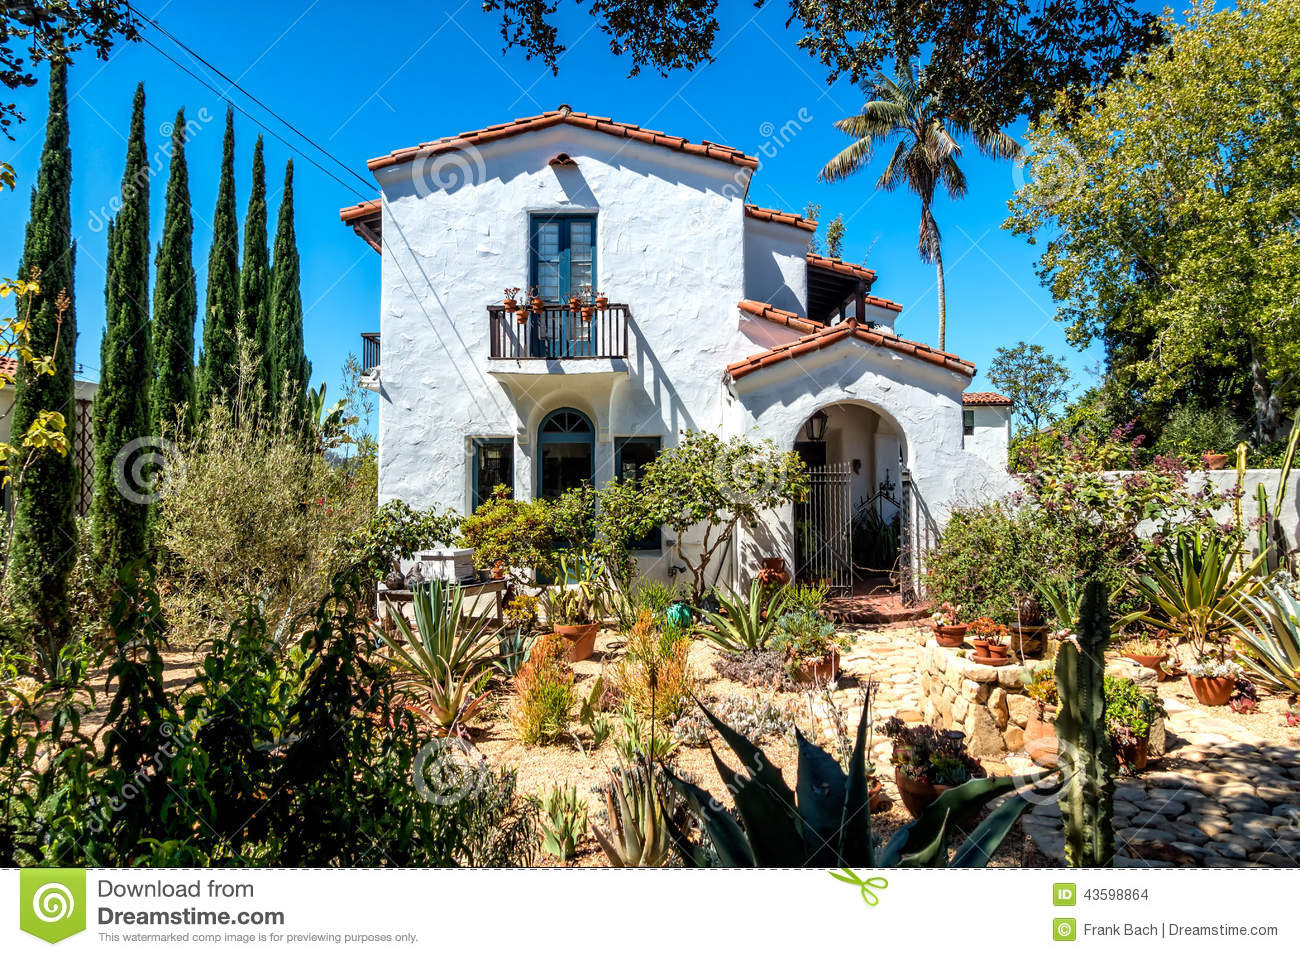 House build in traditional style santa barbara california for Santa barbara style house